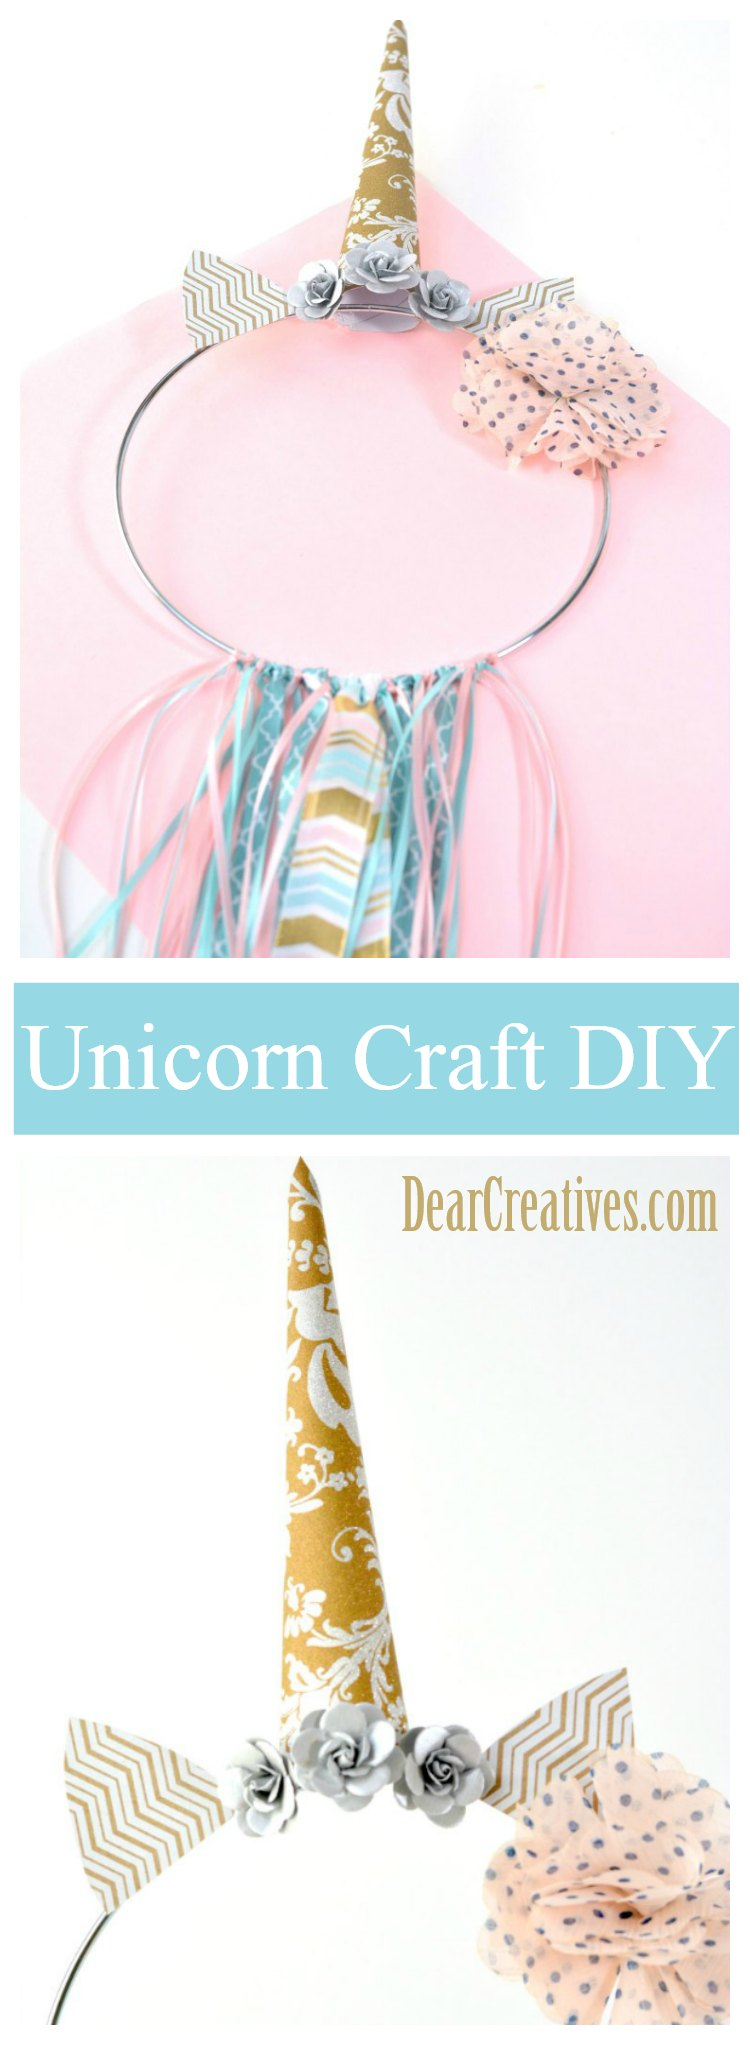 Do You Love Unicorn Crafts This Is One Easy DIY That Can Make For Party